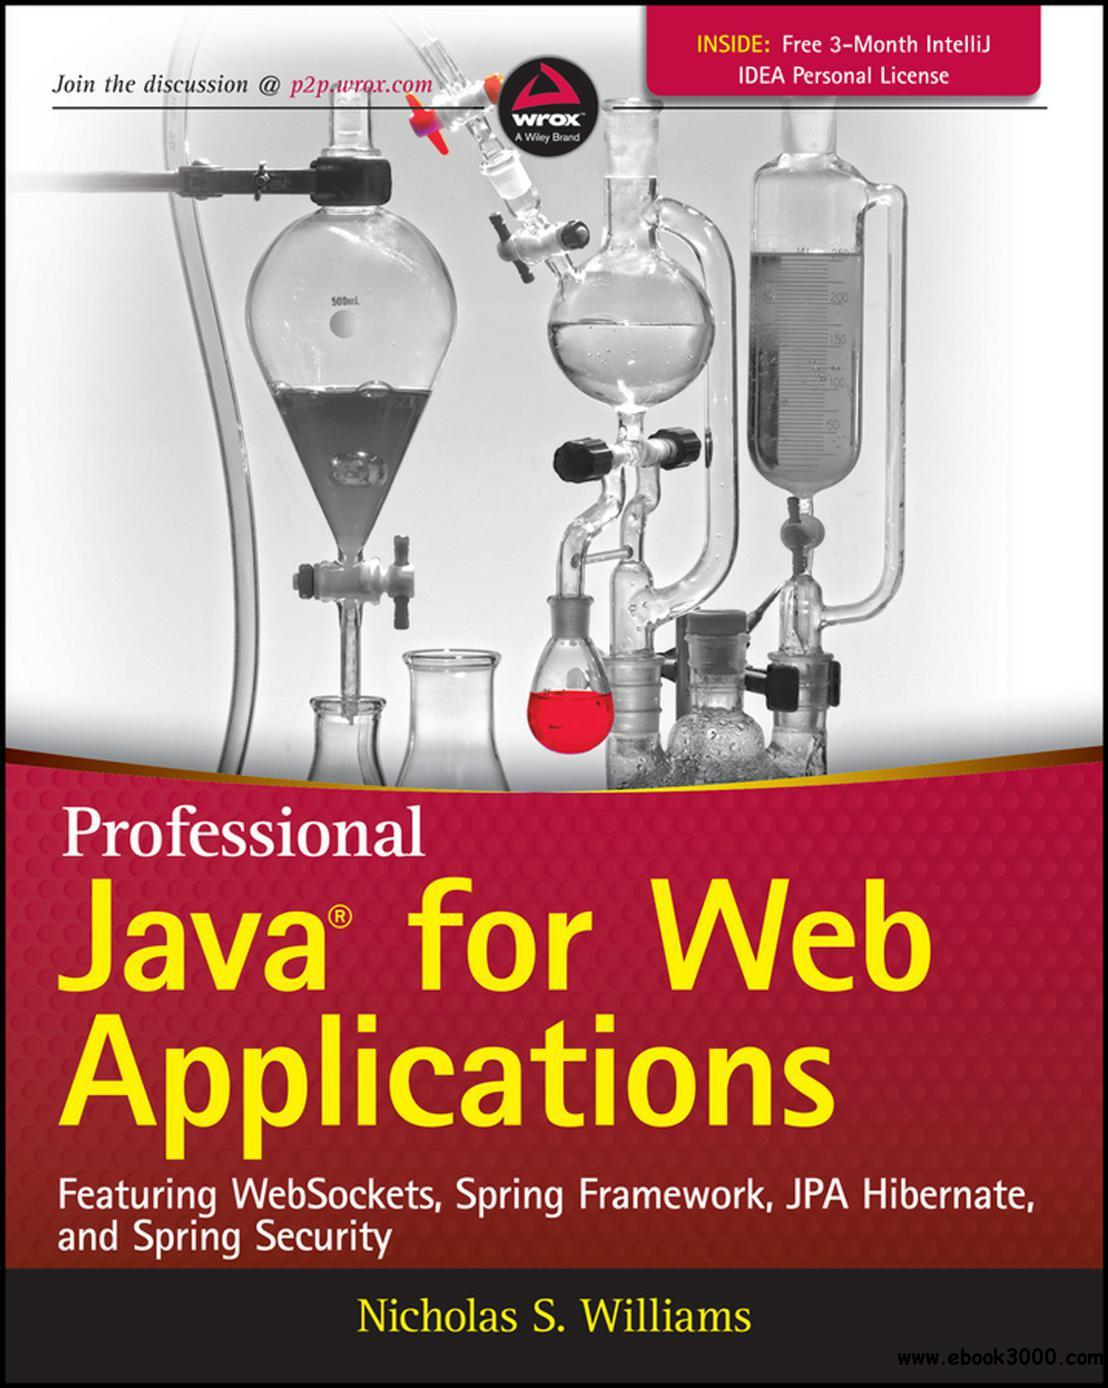 Nicholas S. Williams - Professional Java for Web Applications free download